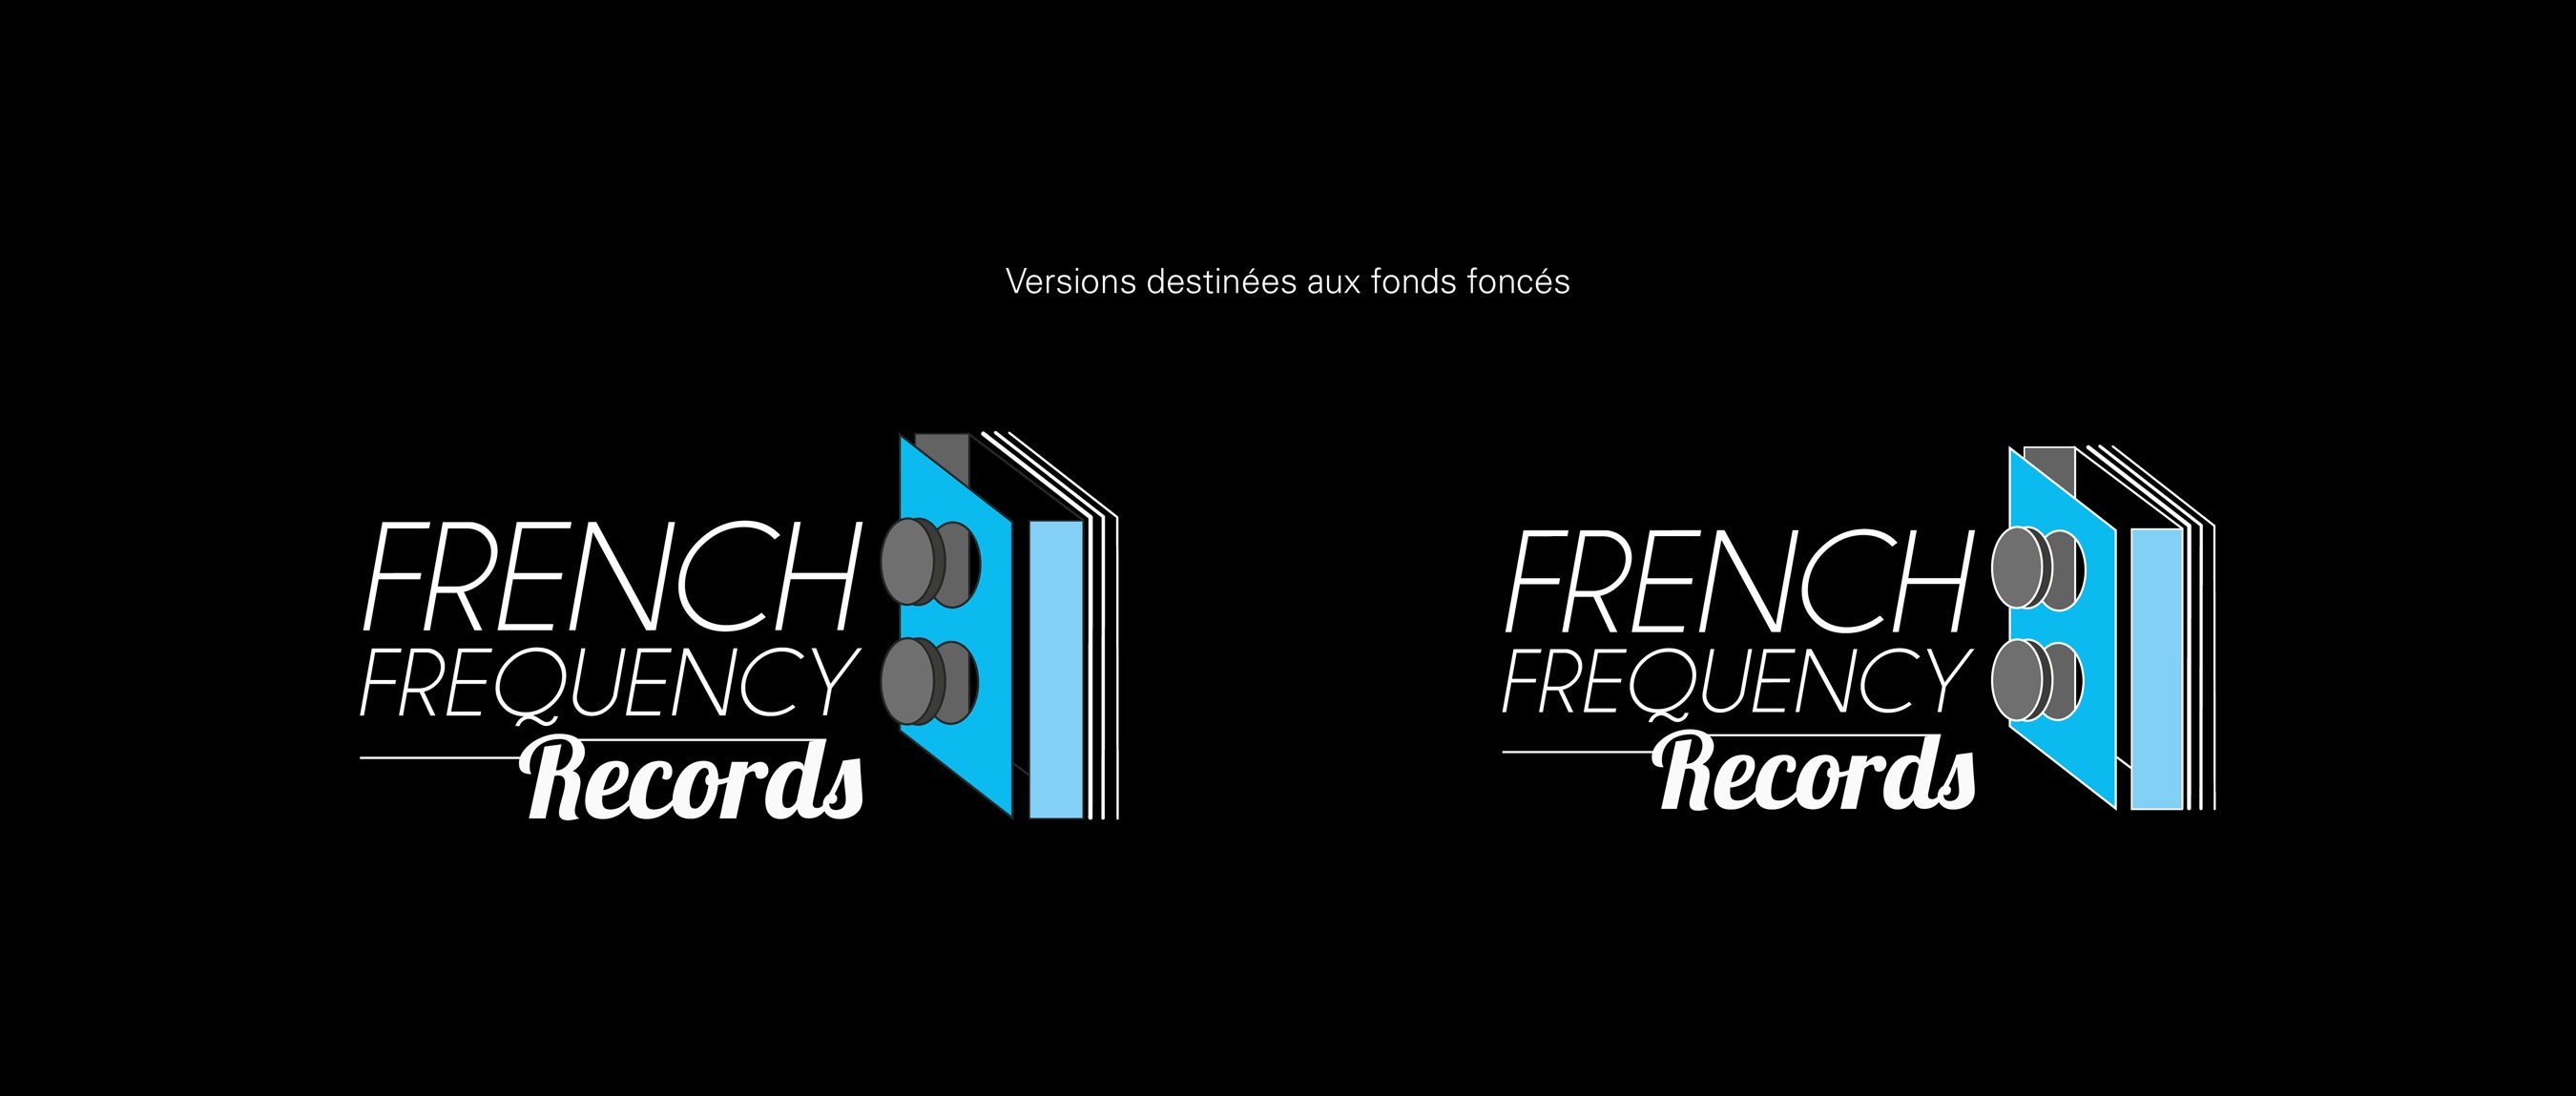 French Frequency Records 5